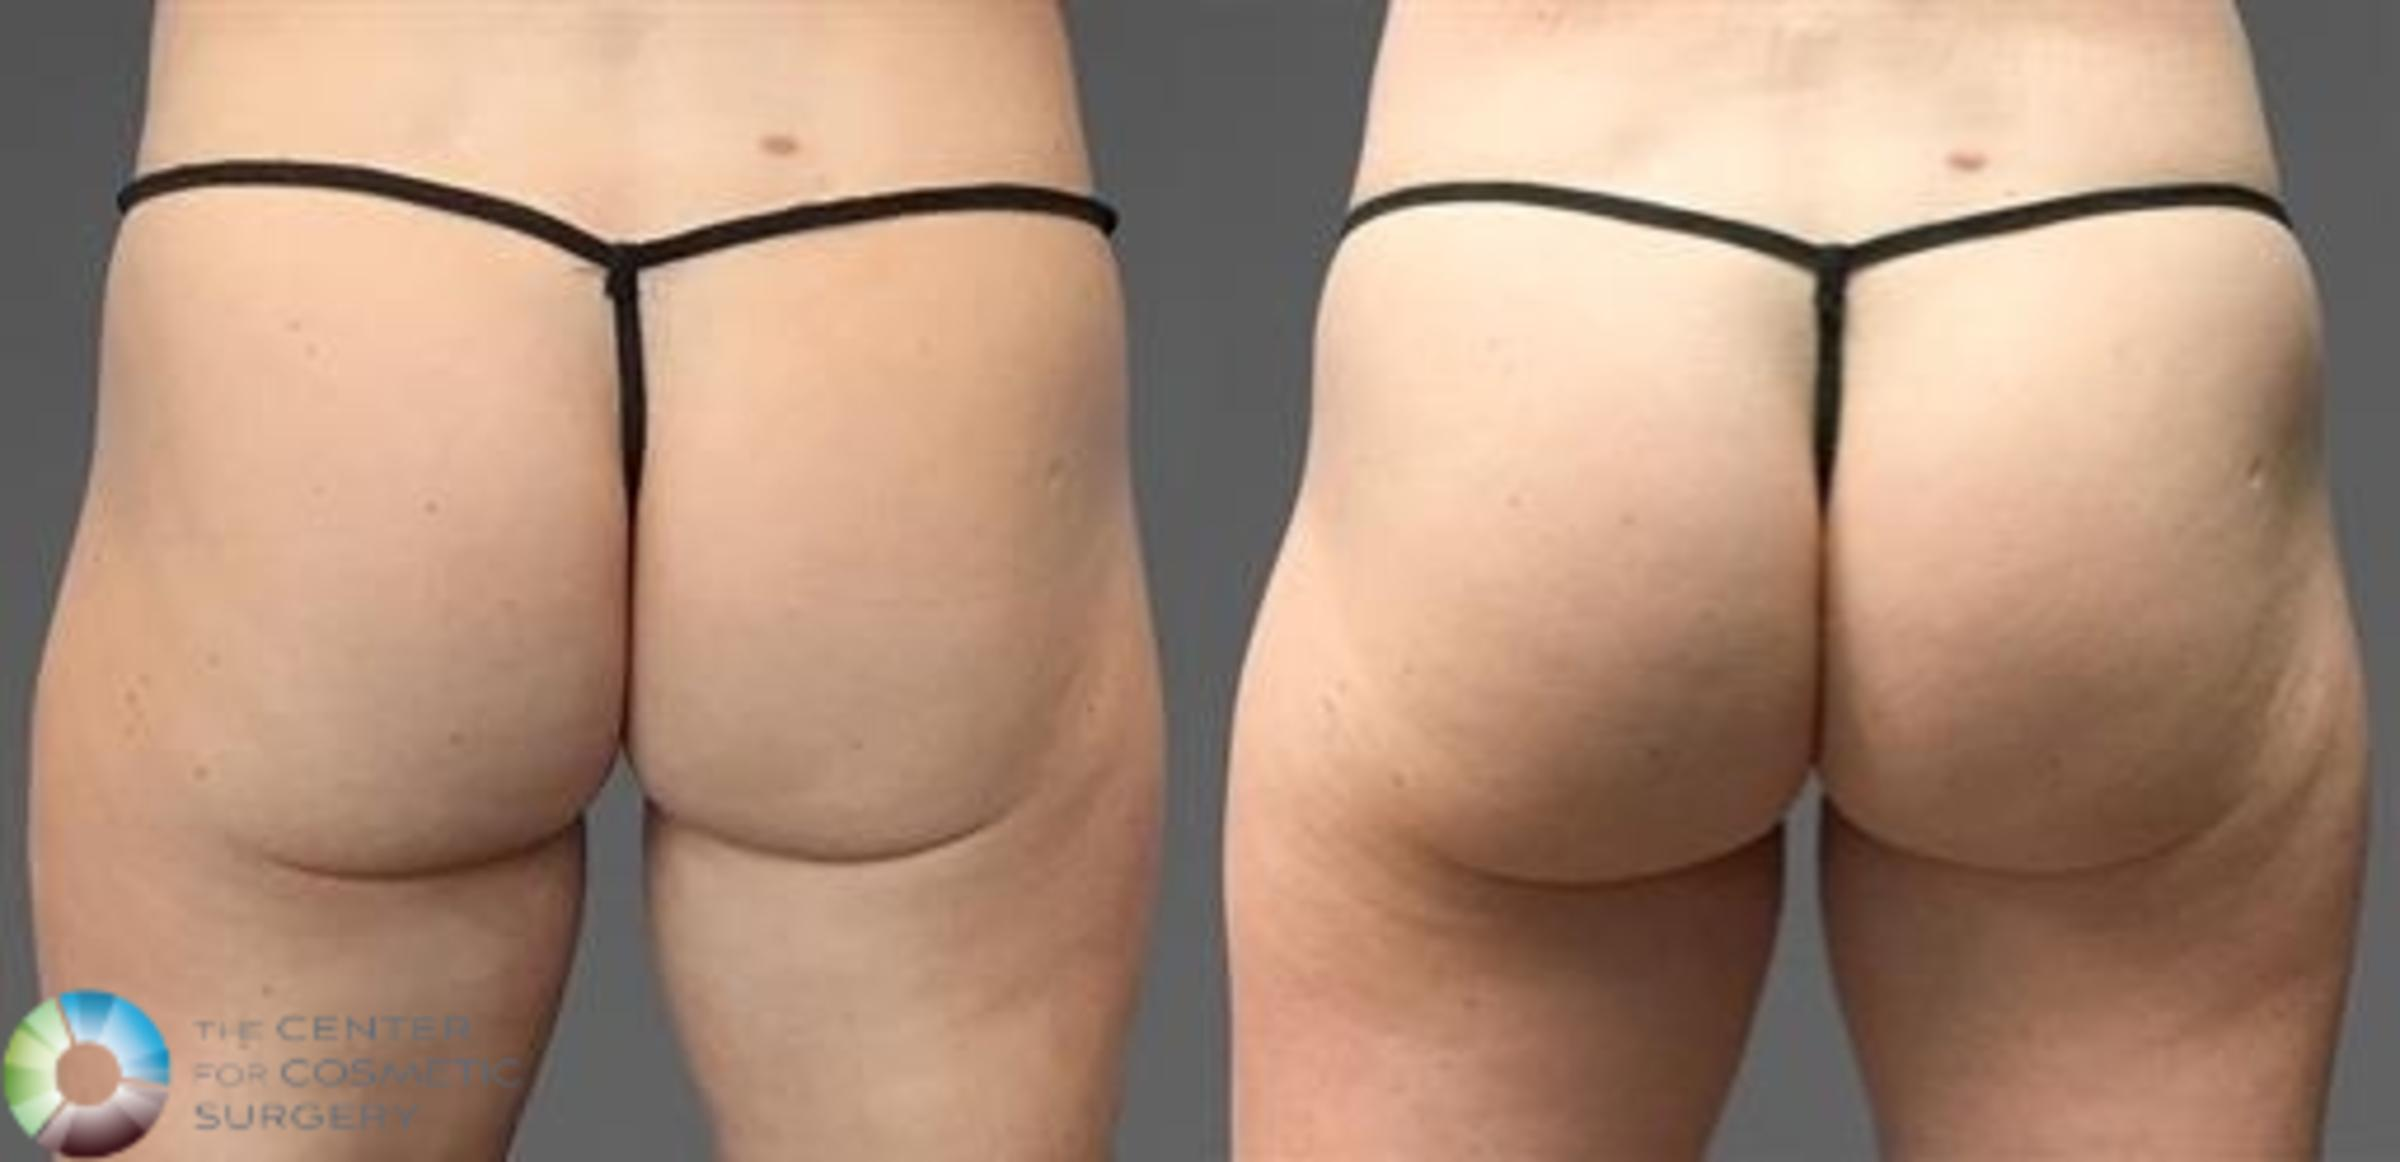 CoolTone Case 11566 Before & After Back | Golden, CO | The Center for Cosmetic Surgery